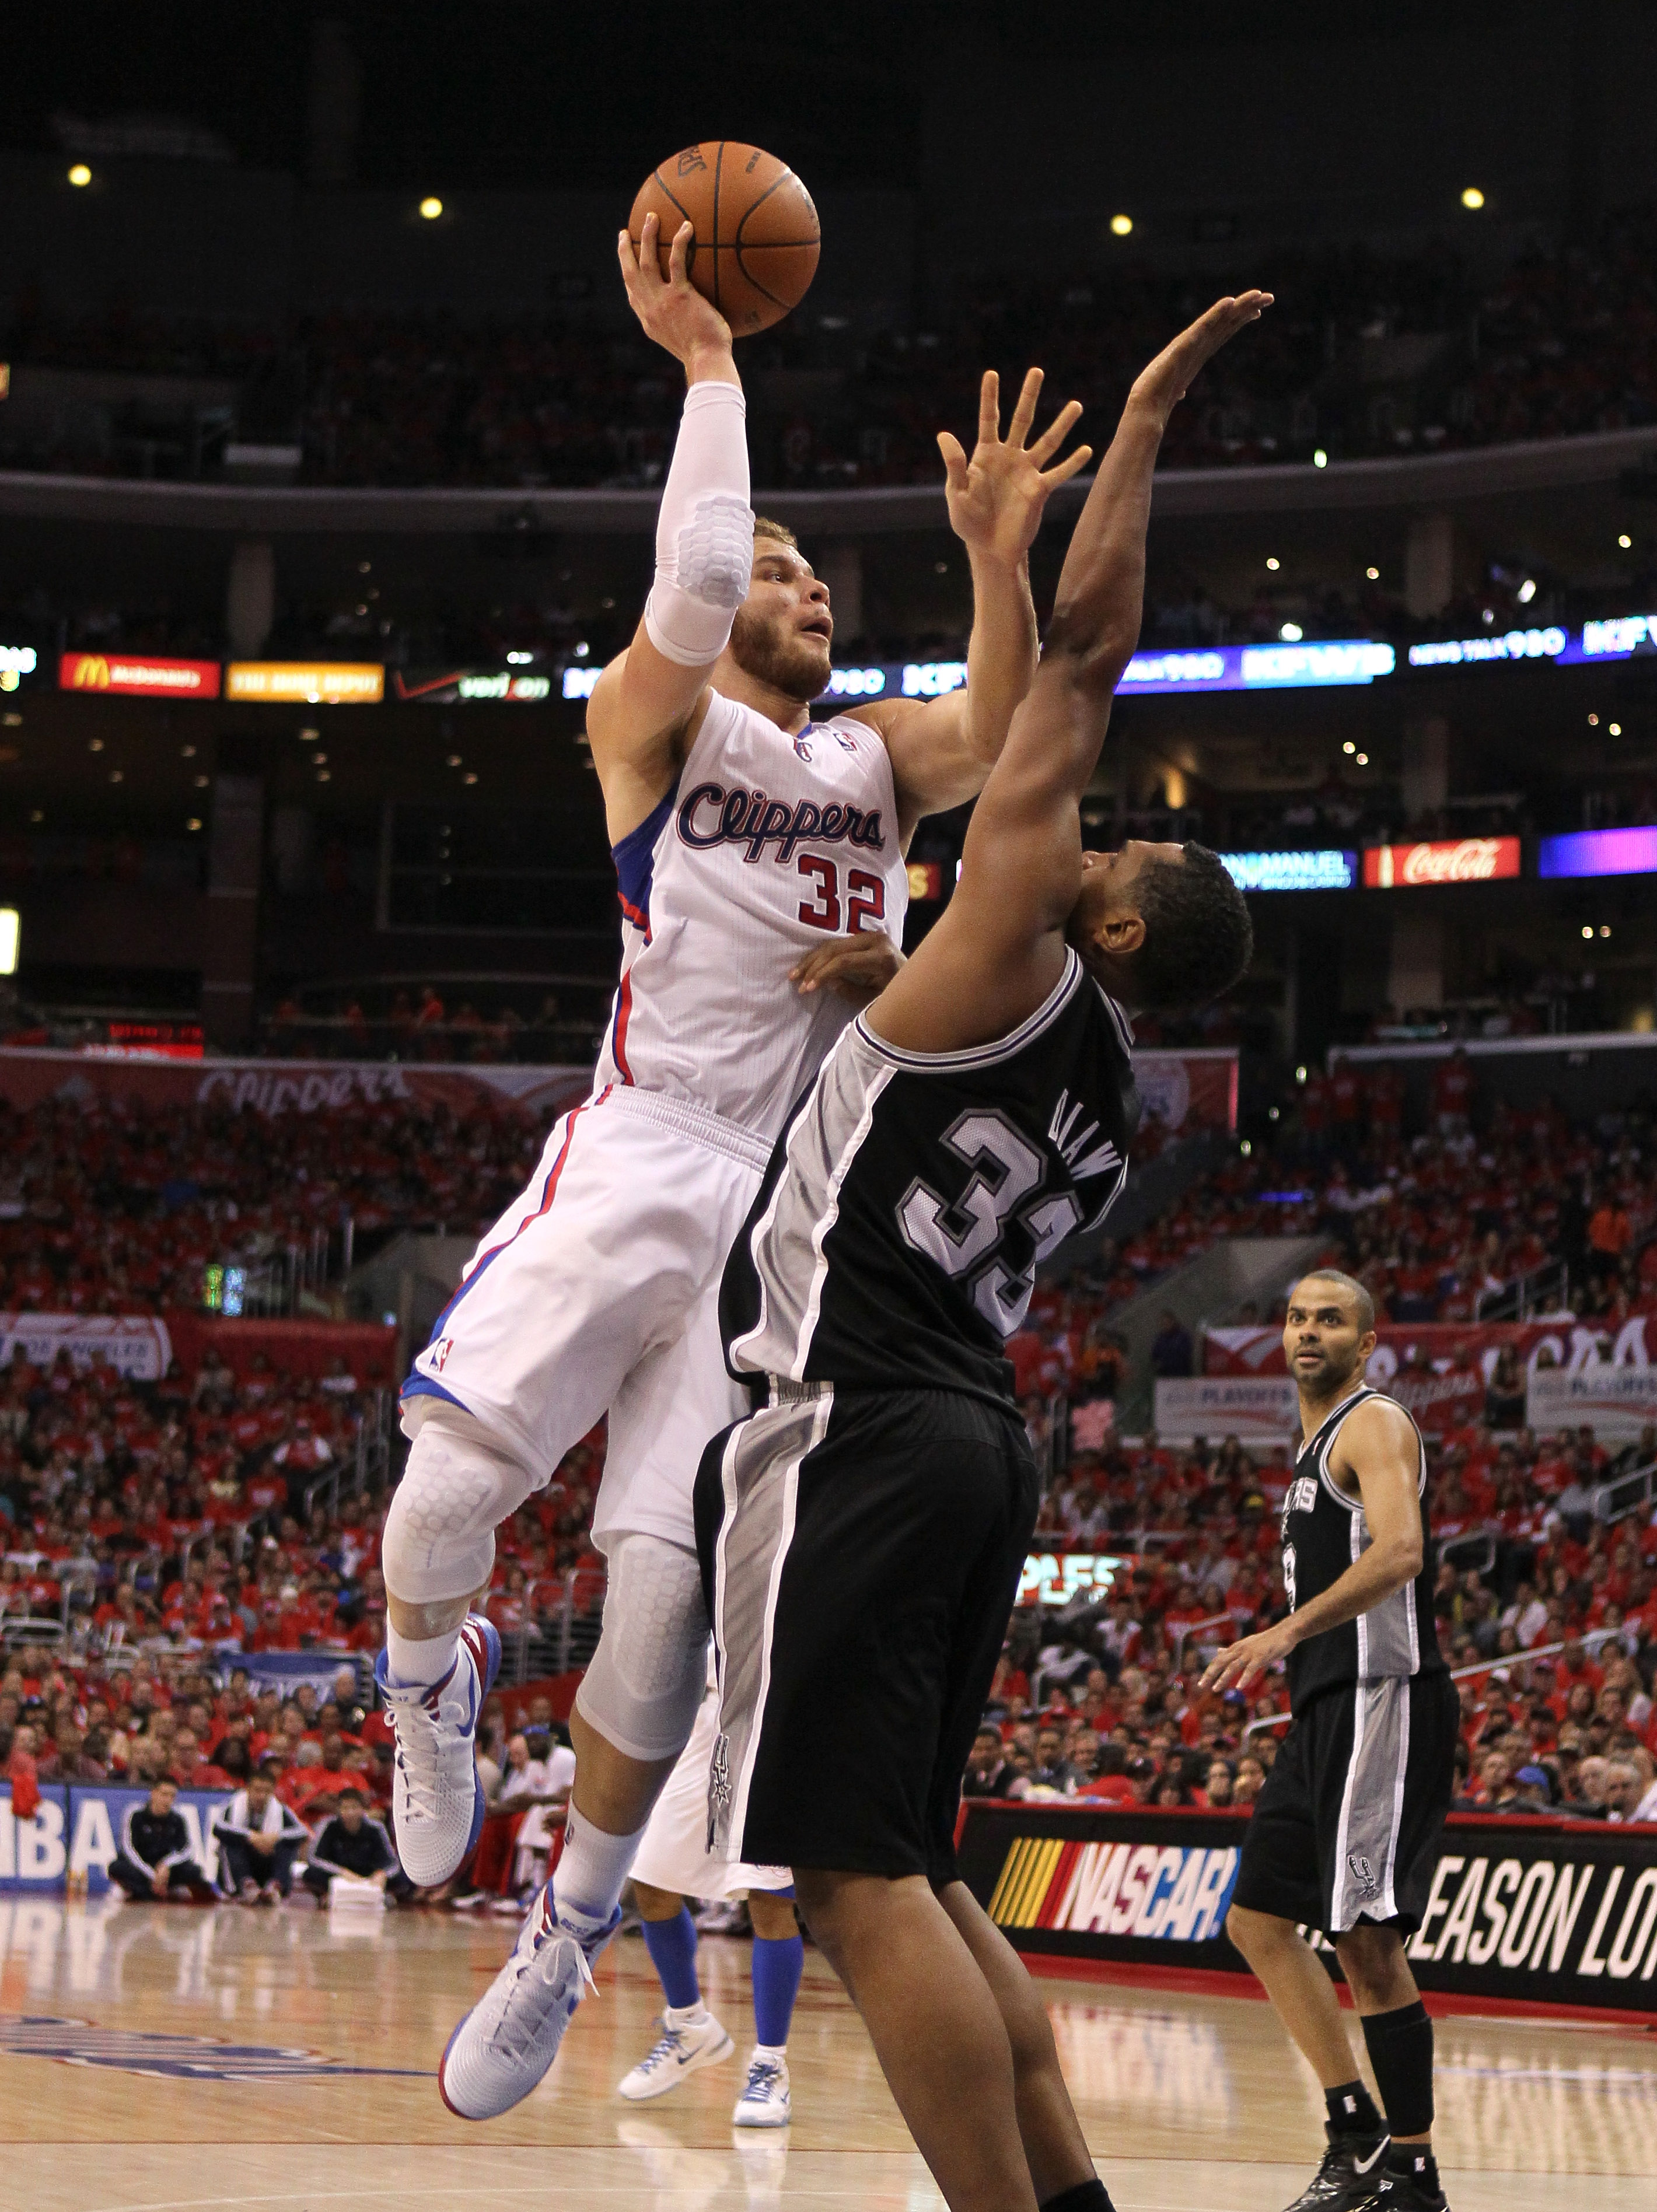 Blake Griffin scored 20 of his 28 points in Game 3 in the first half. (Getty Images)